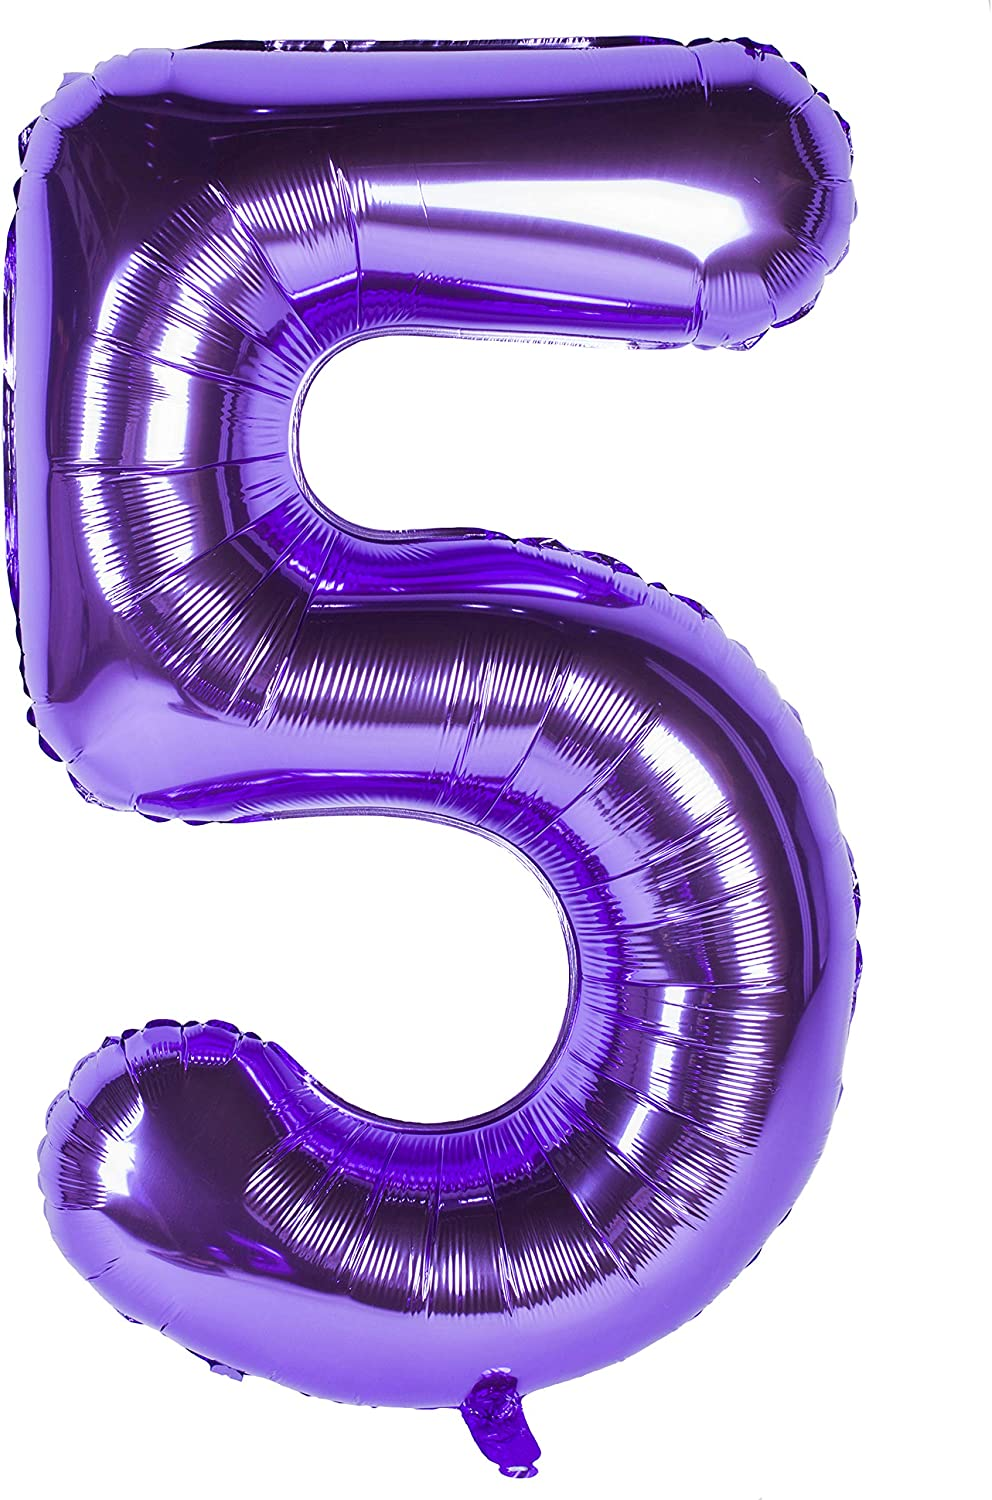 40 Inch Giant Purple Number 8 Balloon,Foil Helium Mylar Large Digital Balloons for Girl Birthday Party Decorations,Wedding,Bridal Shower